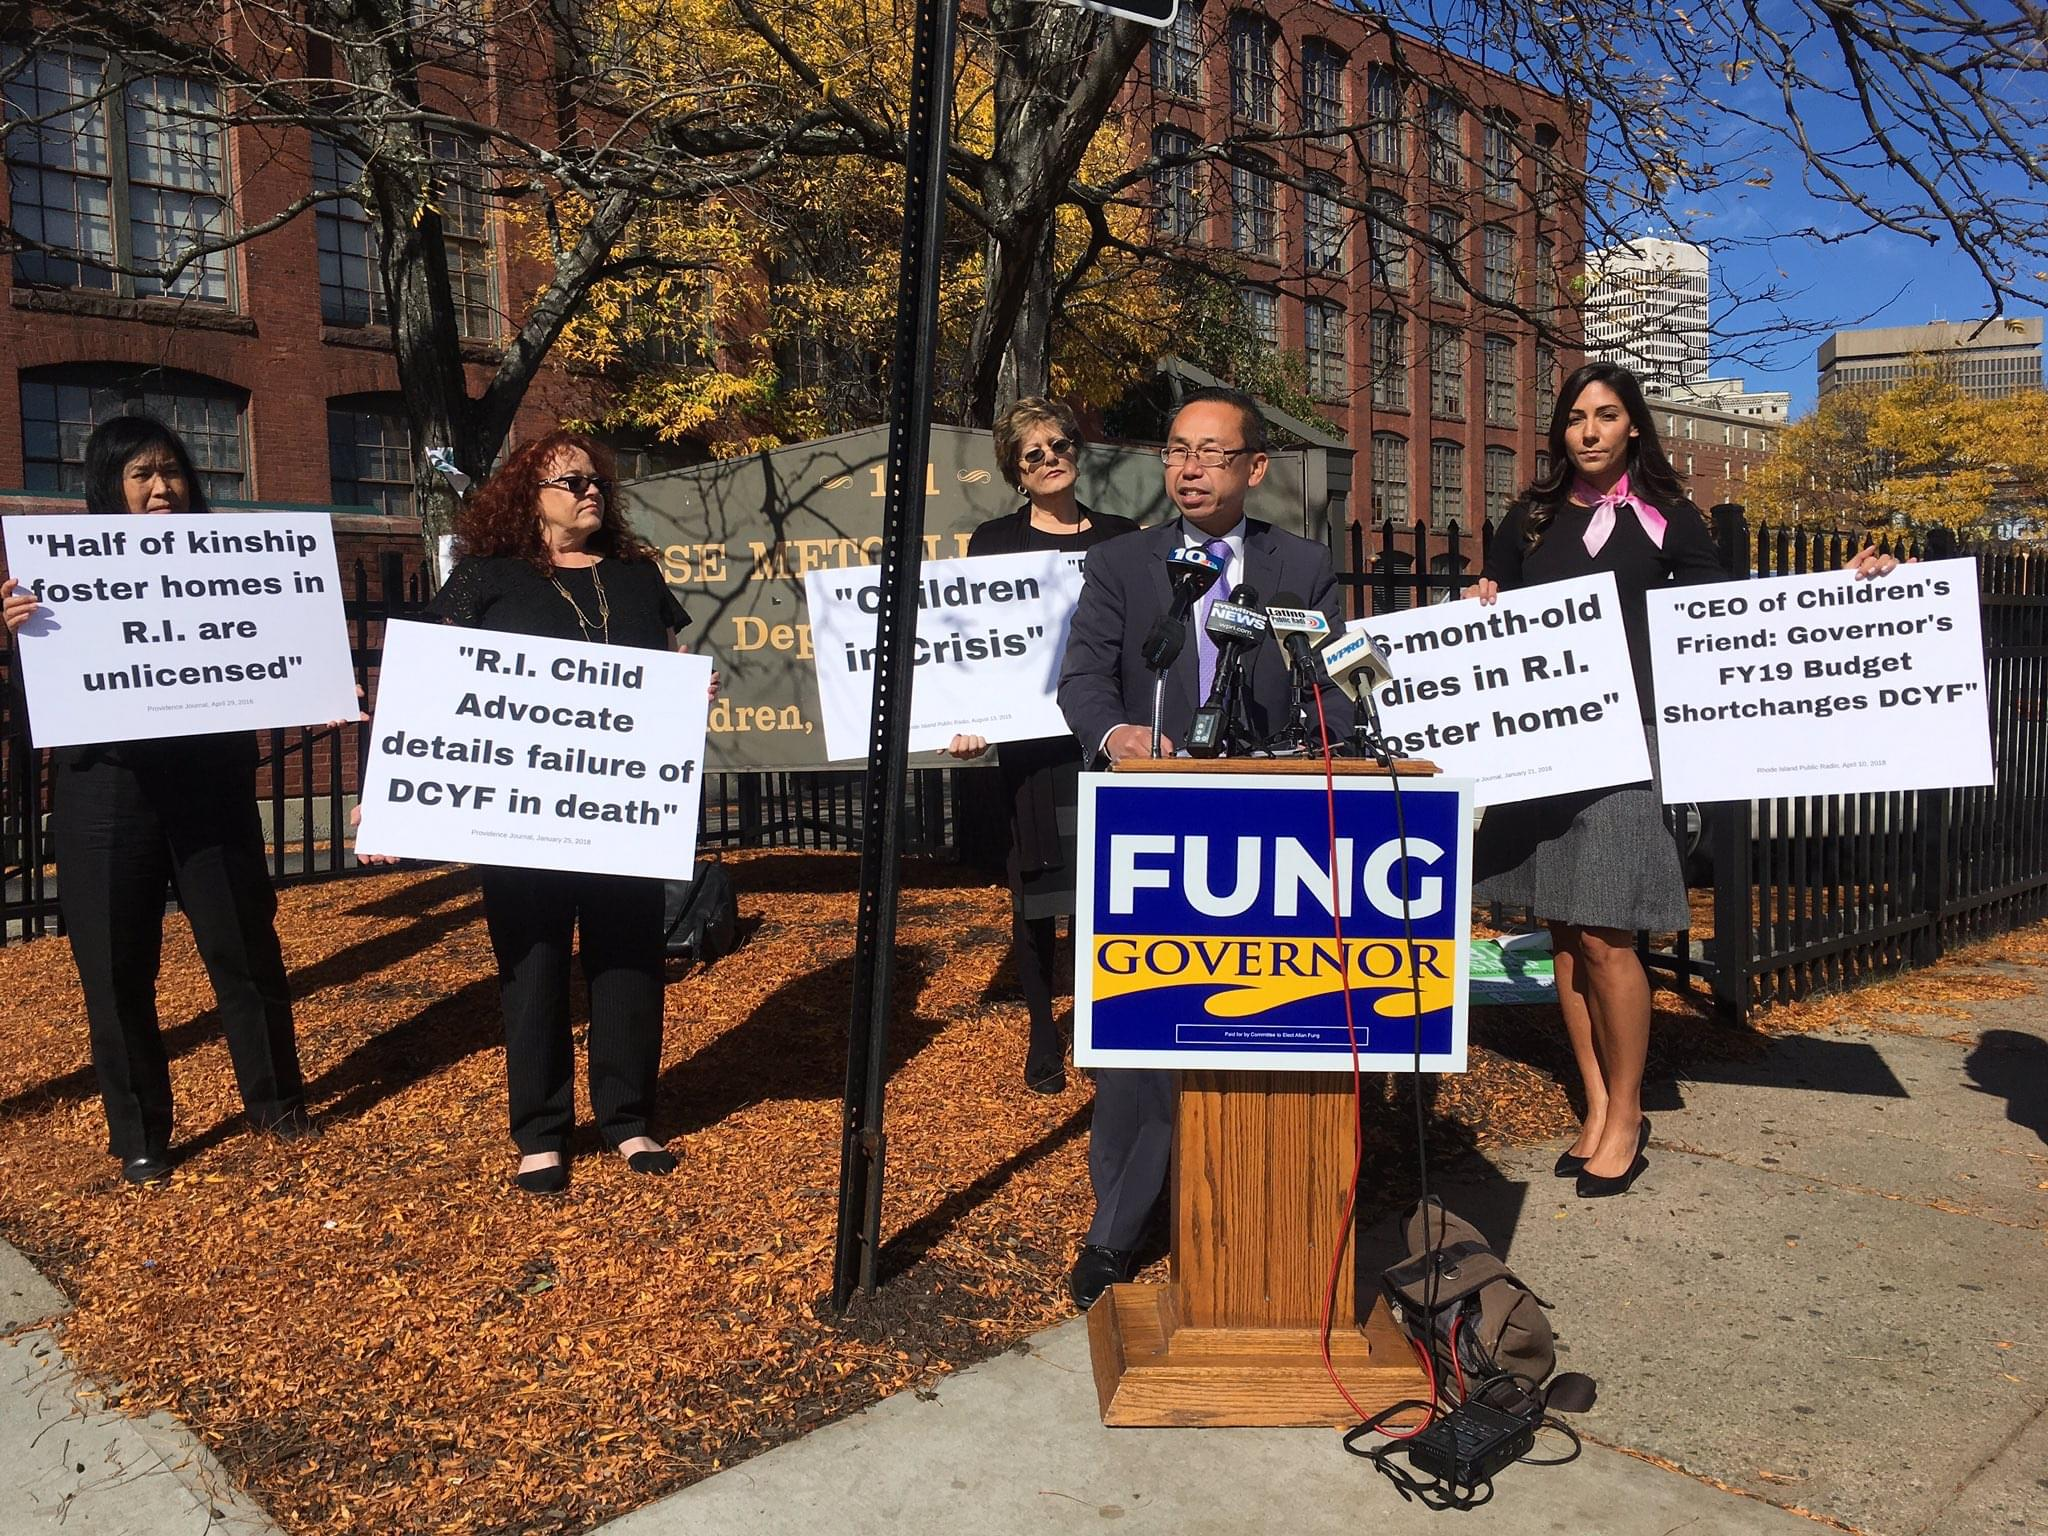 Fung lays out plans for DCYF reforms, criticizes Raimondo